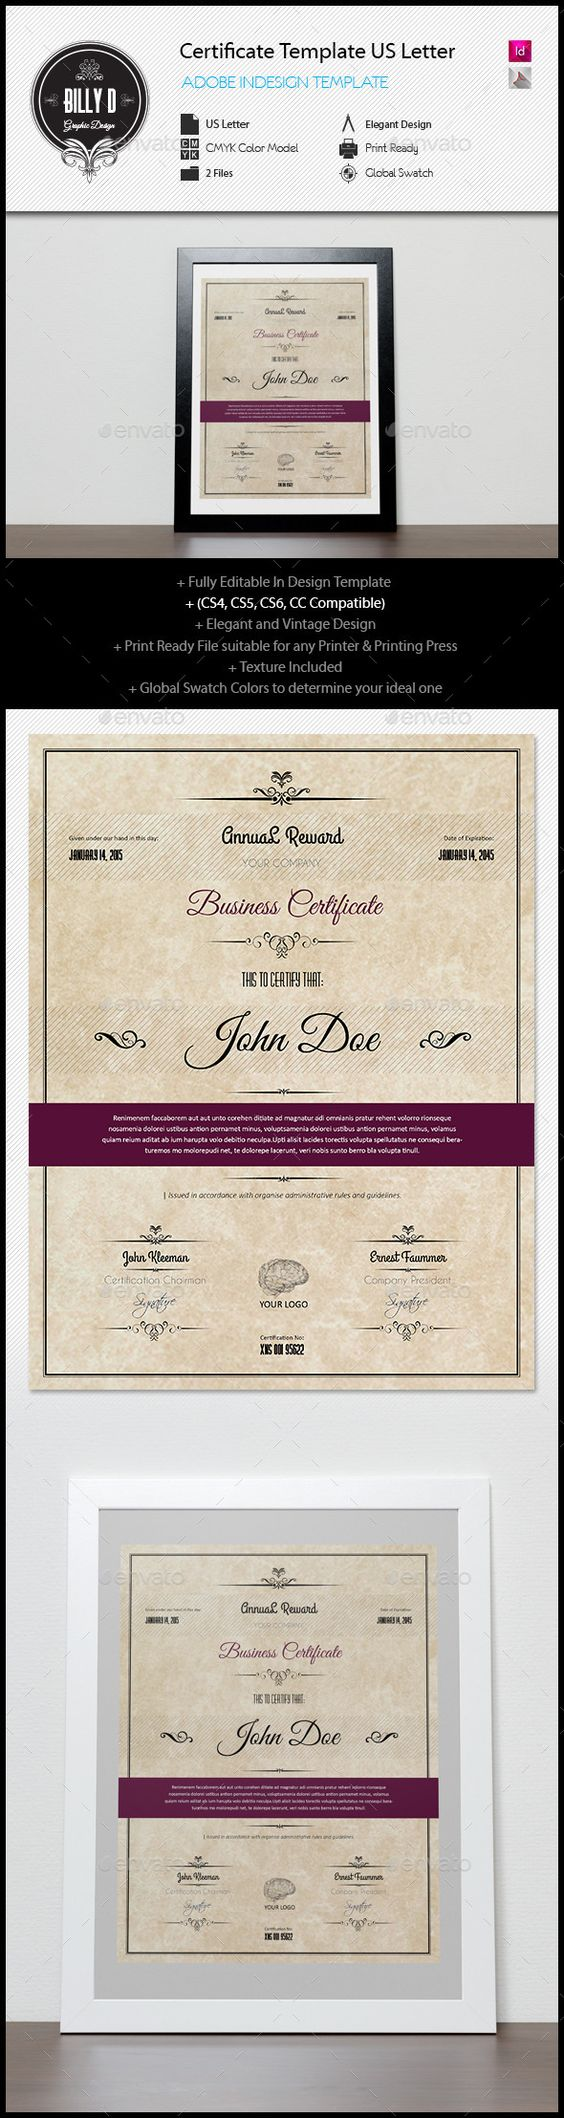 Certificate template us letter certificate template and adobe certificate template us letter certificate template and adobe indesign yelopaper Image collections